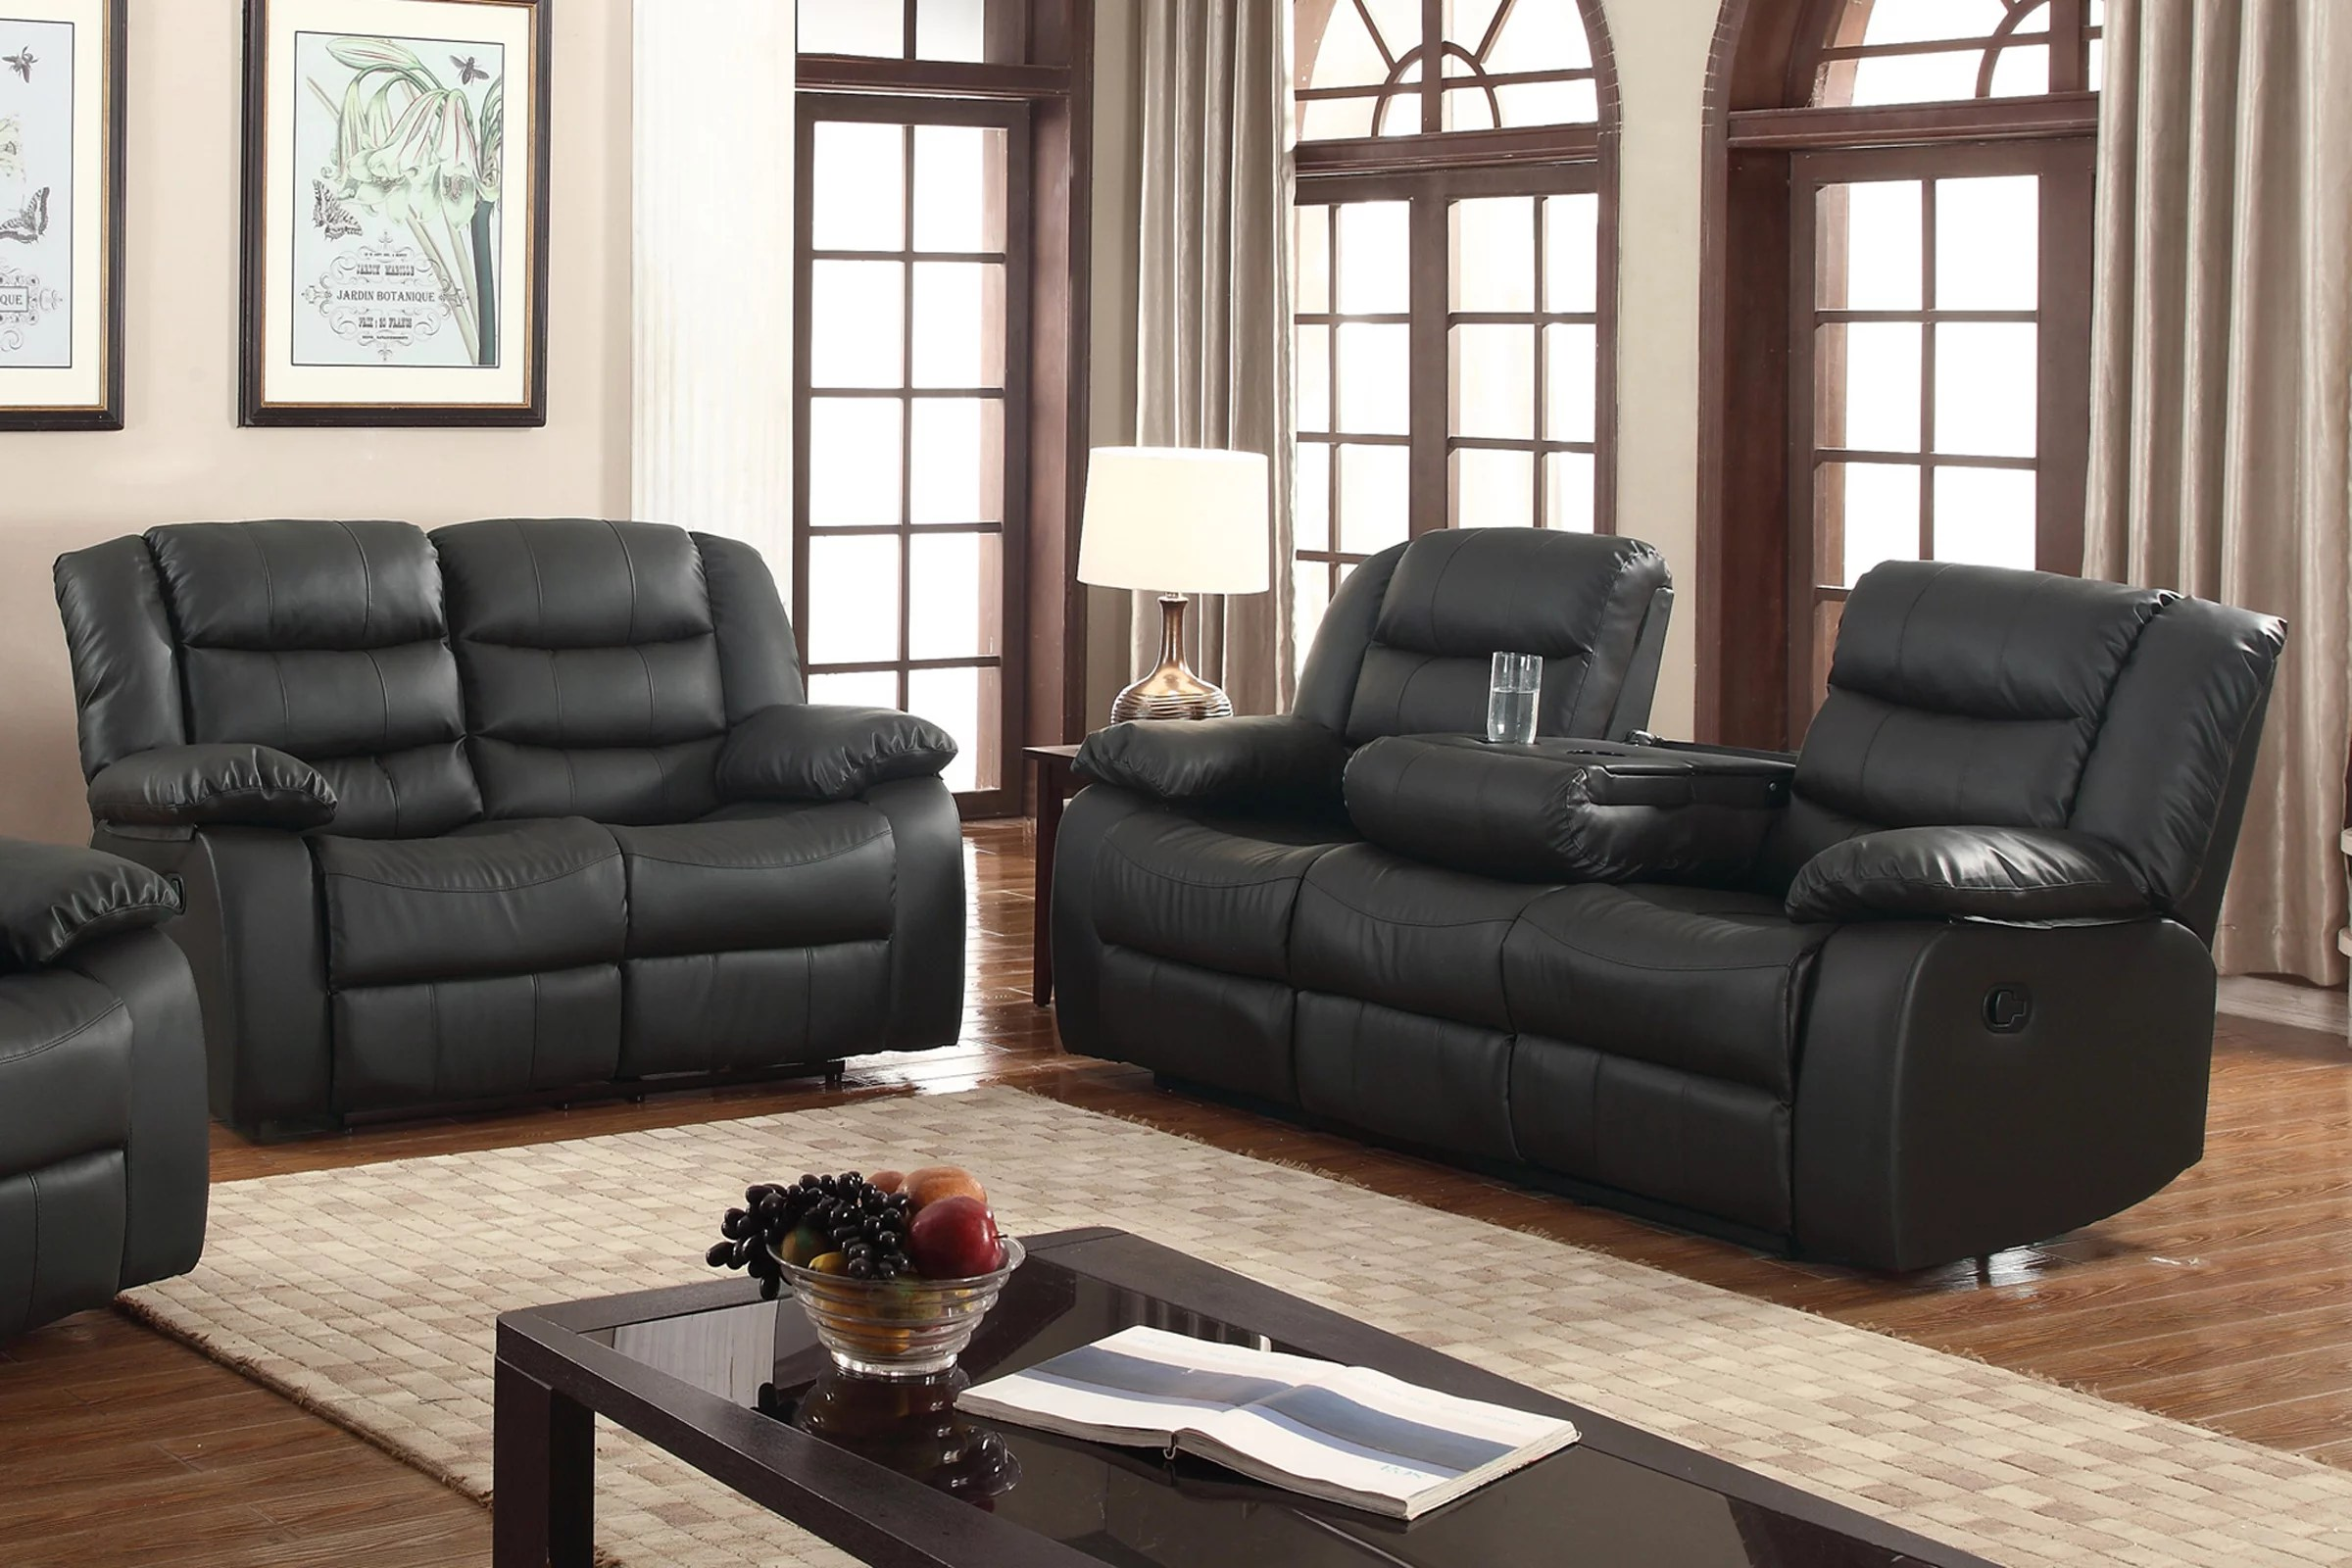 walmart living room sets furniture tv layla 2 pc black faux leather reclining sofa and loveseat set with drop down tea table com